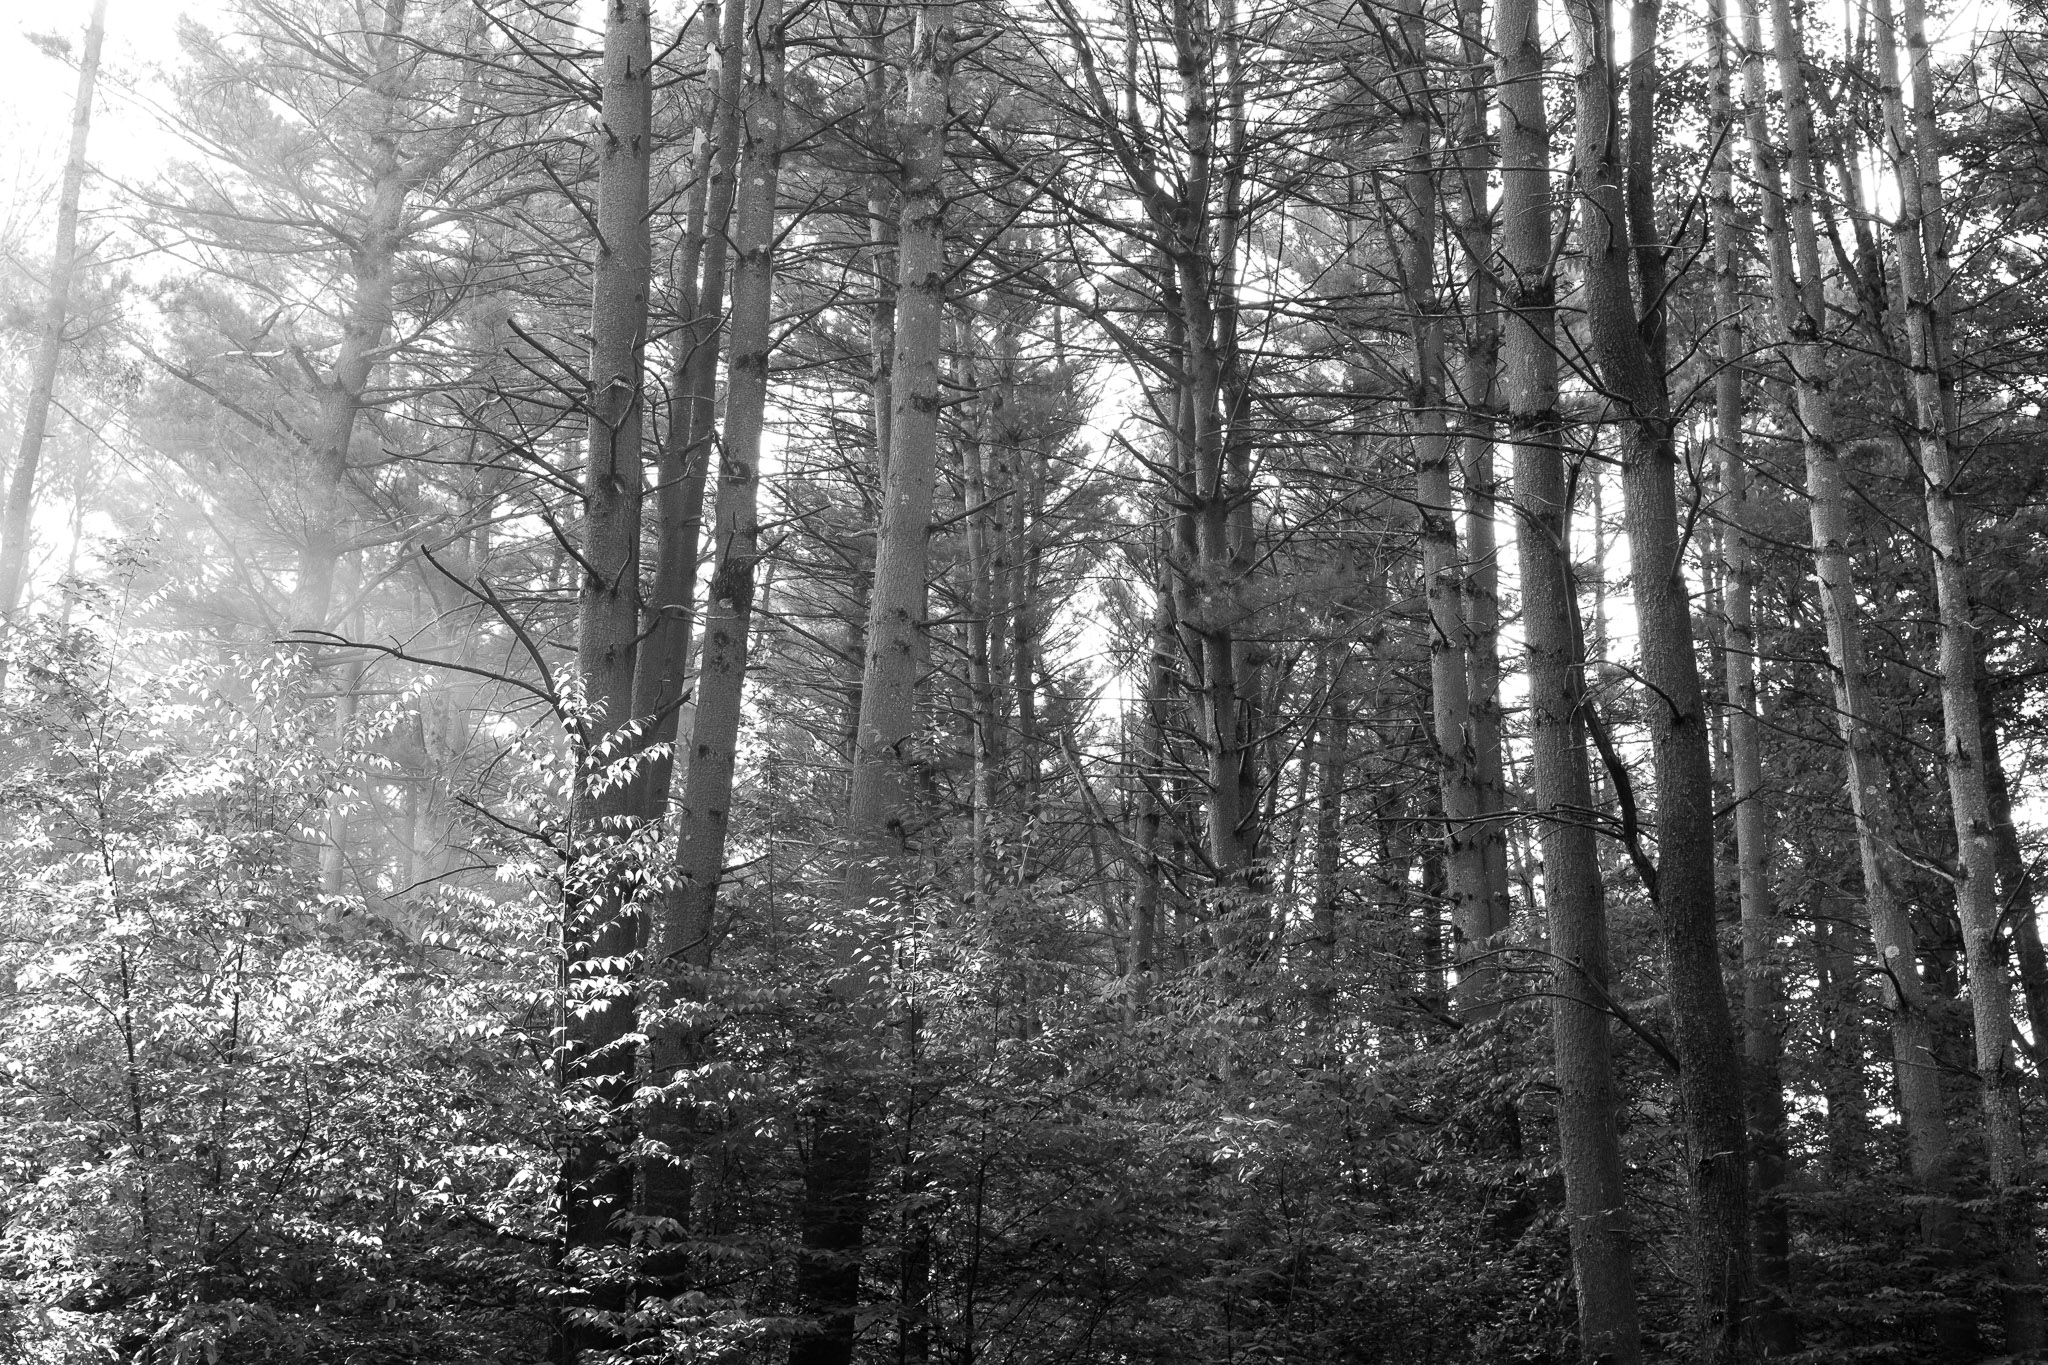 one of the very few images taken while camping in allegheny